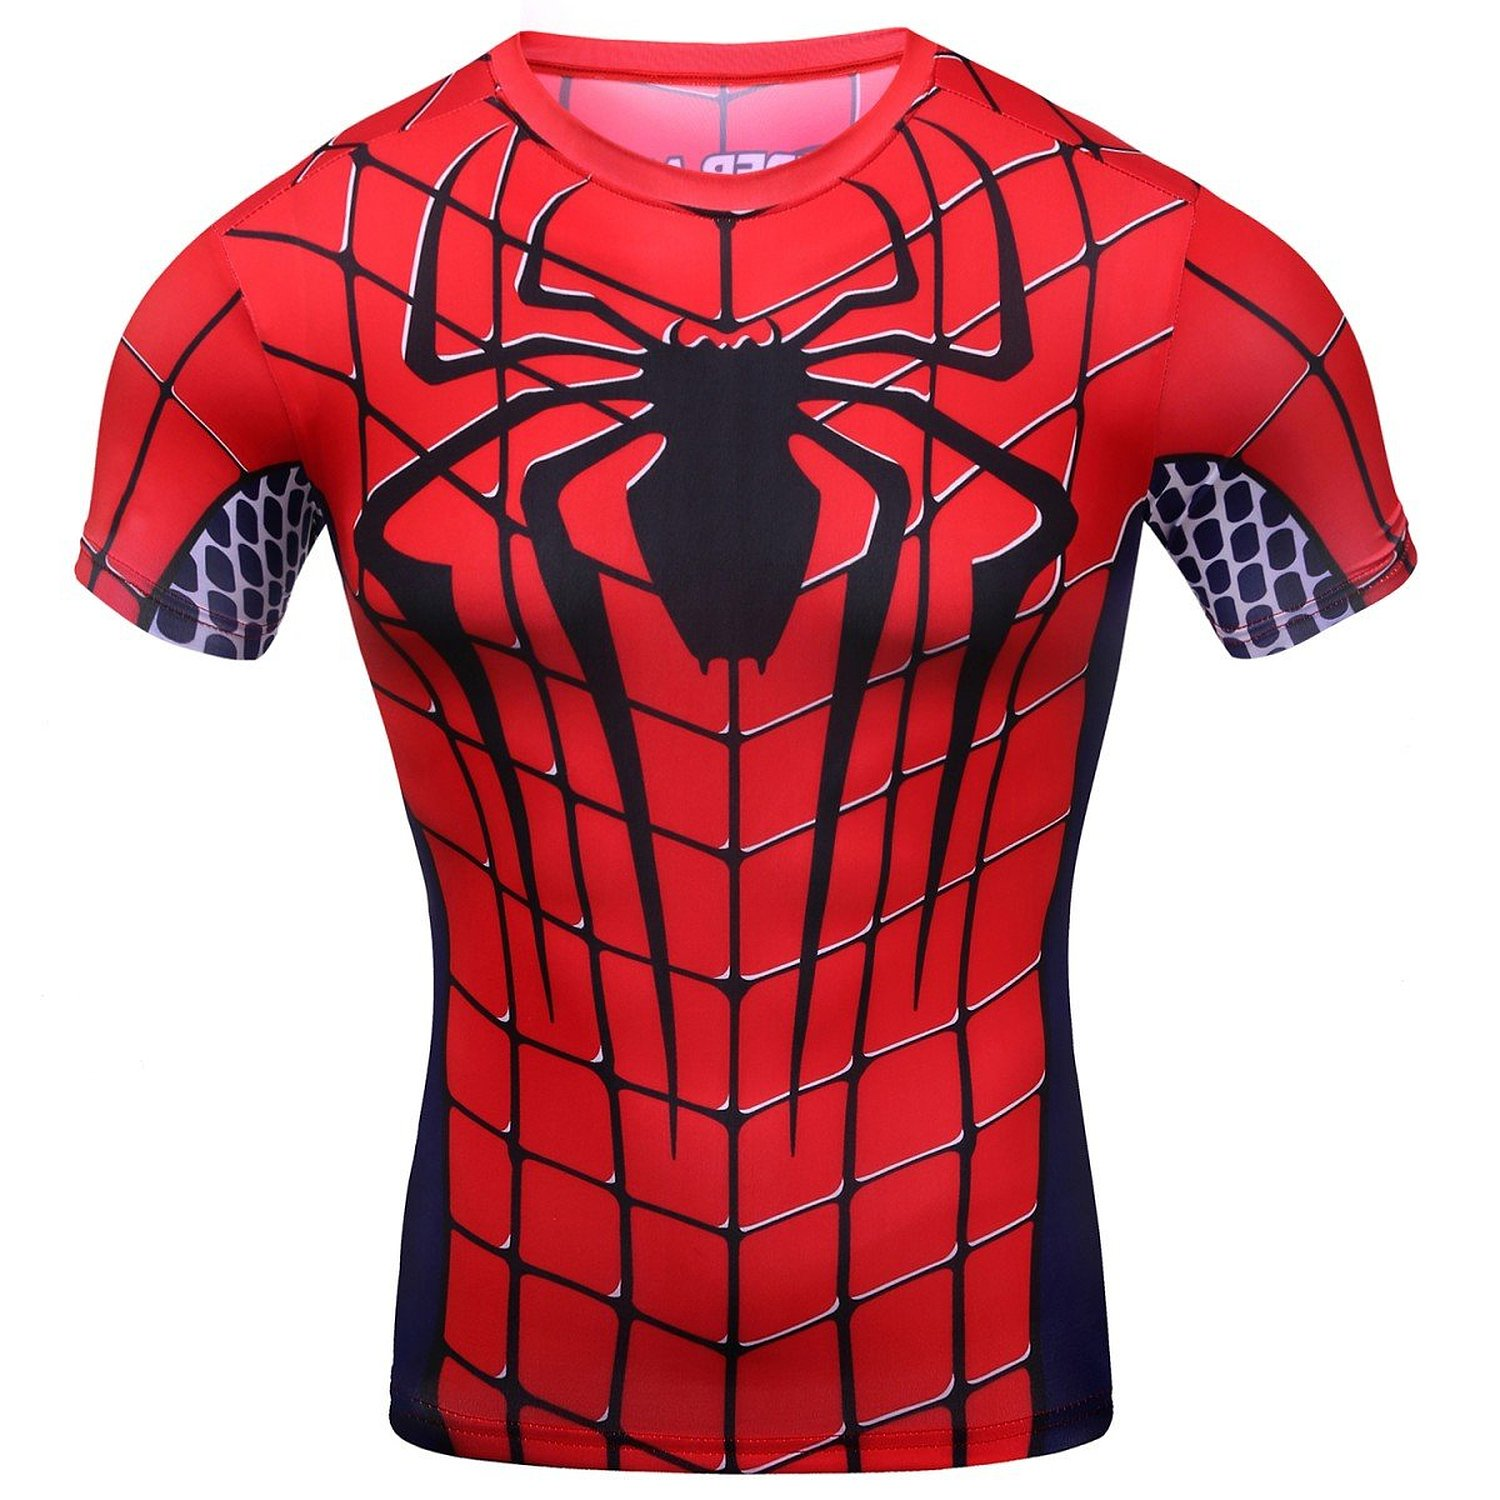 Shirt from reliable t shirt city suppliers on super hero sports shop